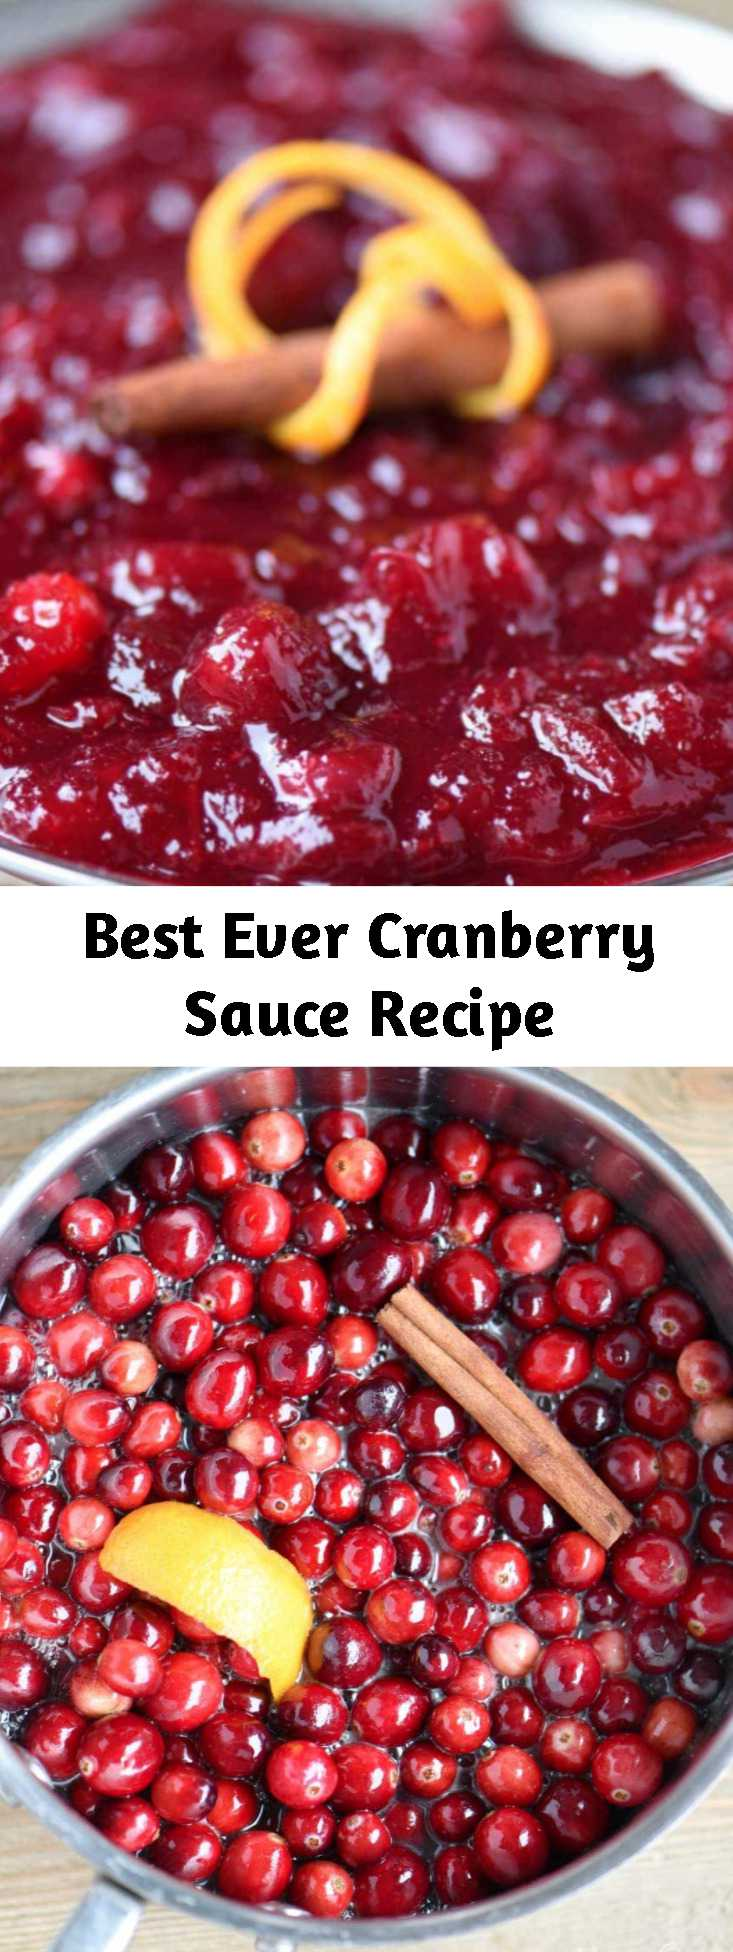 Best Ever Cranberry Sauce Recipe - Look no further for the Best Ever Cranberry Sauce! This easy and delightful recipe takes only 15 minutes to make and a handful of ingredients! Spiced with cinnamon and sweetened with orange juice, it is the best combination of sweet and tart! The perfect complement to your holiday meal!